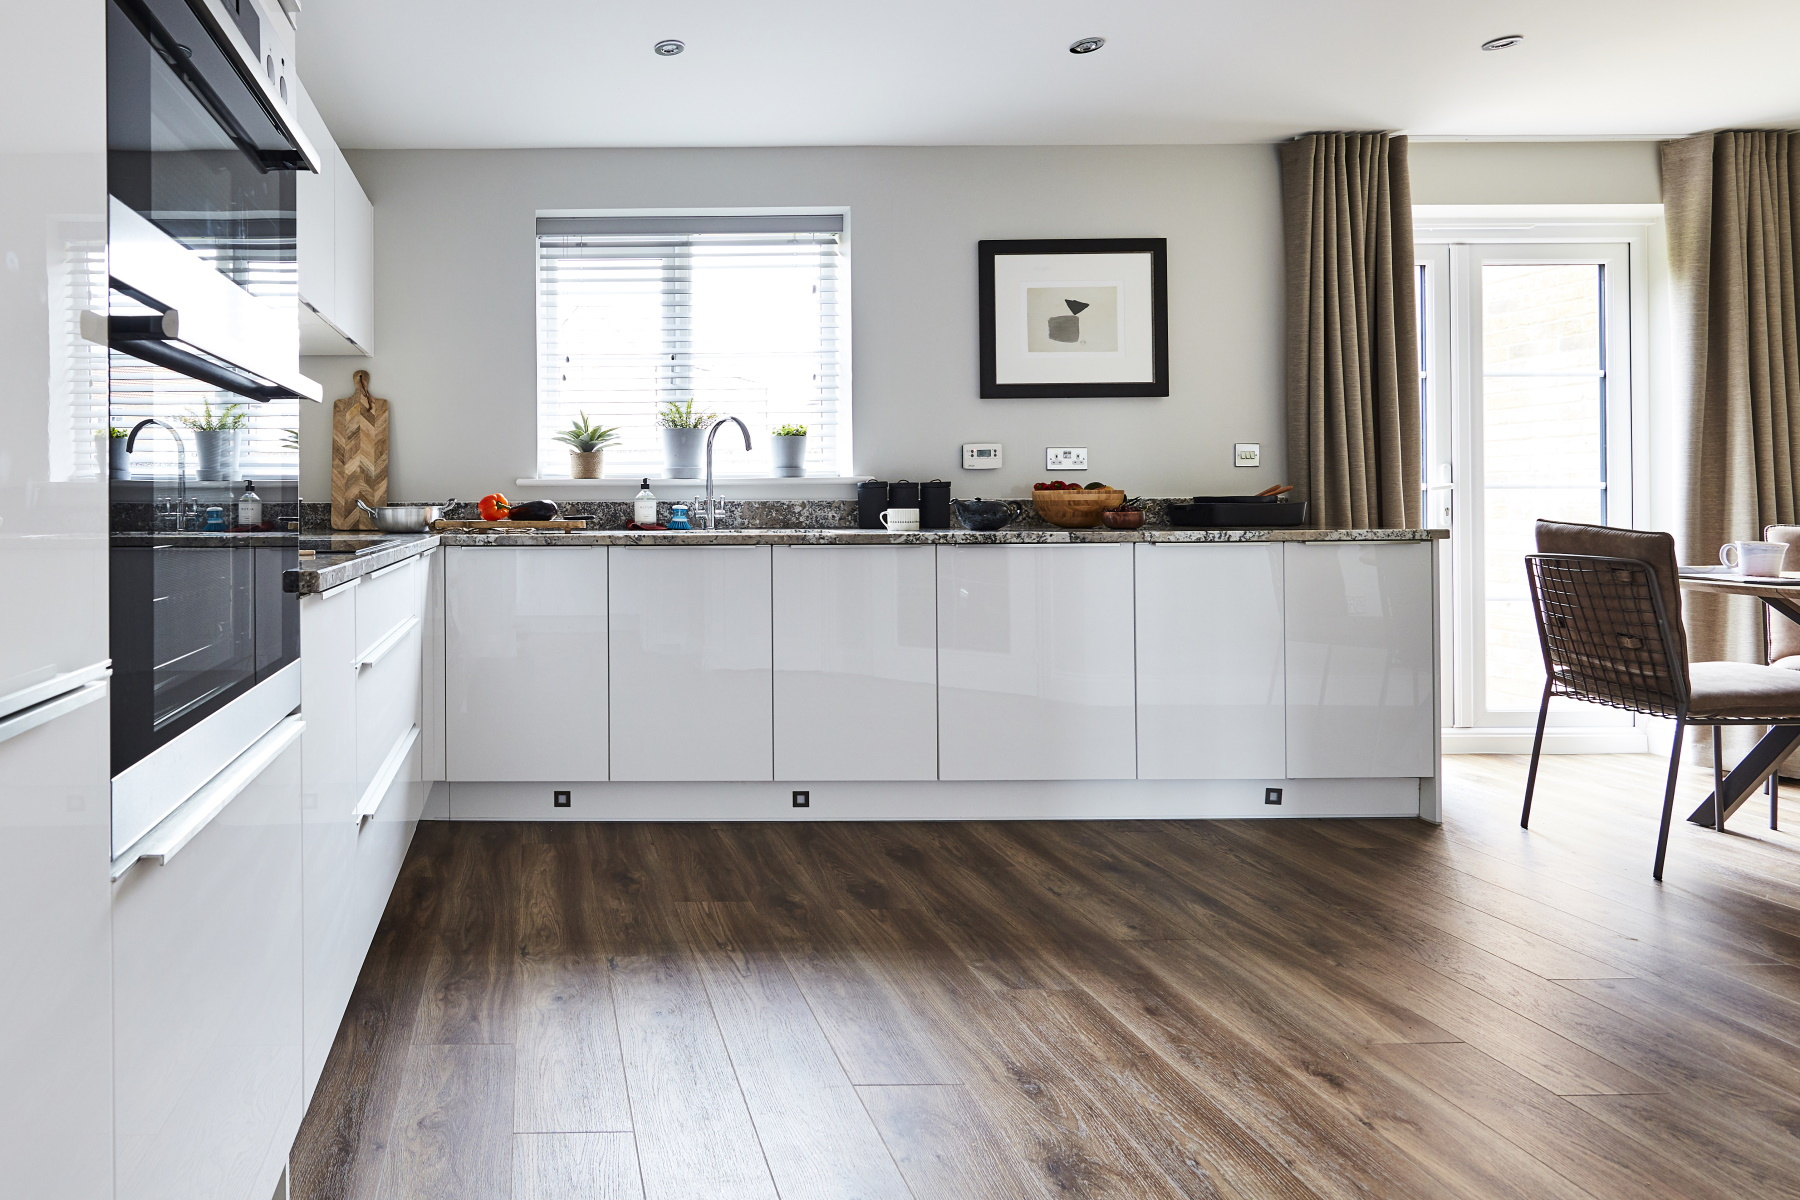 TW Exeter - Sherford - Maple example kitchen 2